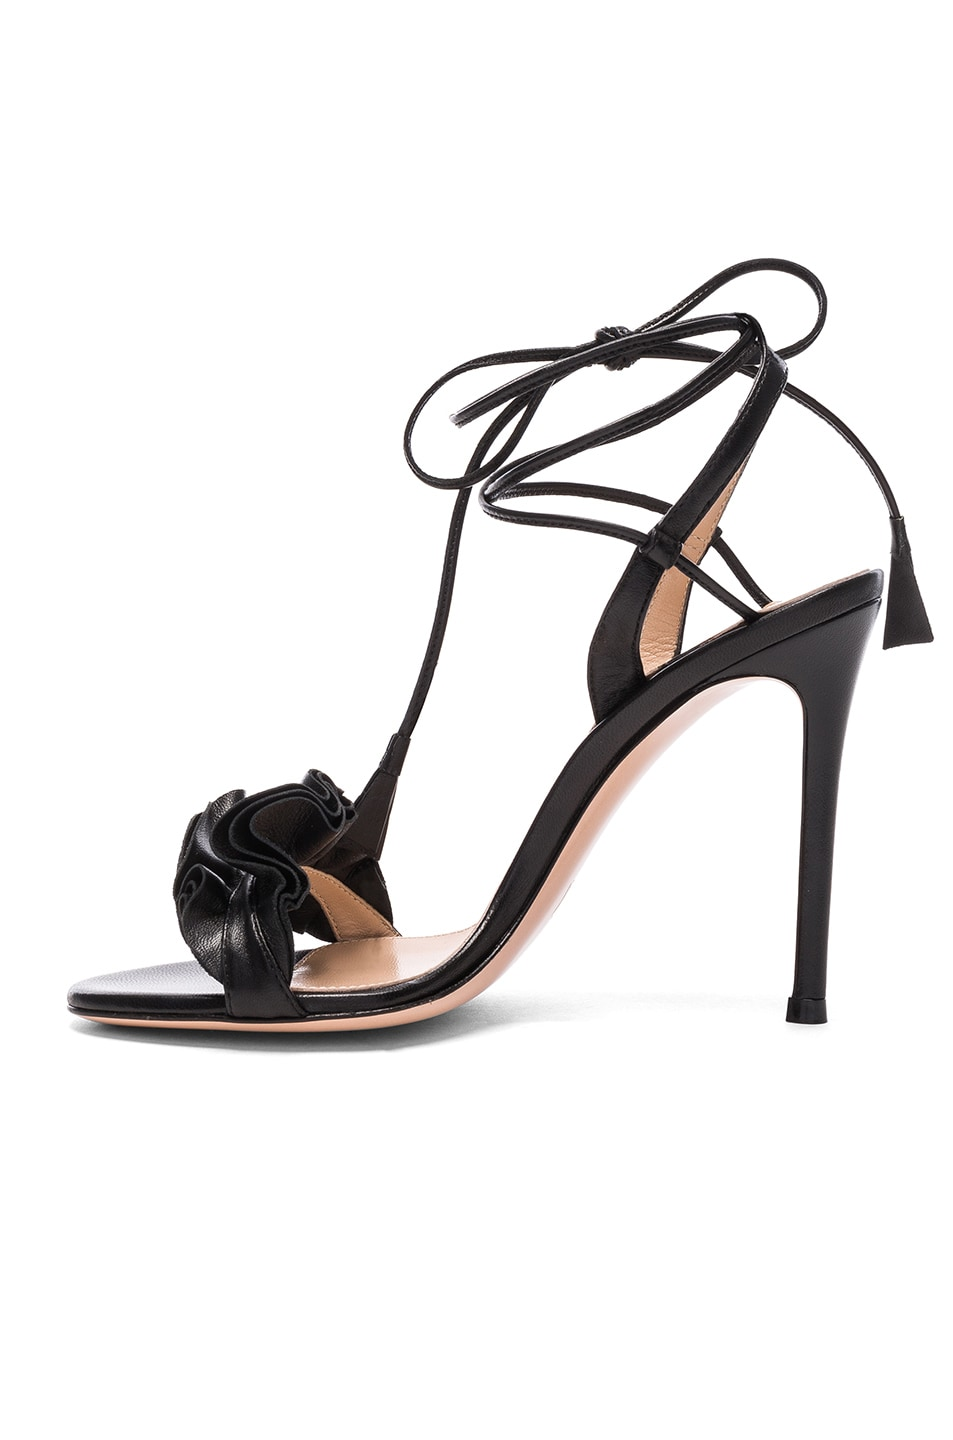 Image 5 of Gianvito Rossi Leather Ruffle Heels in Black